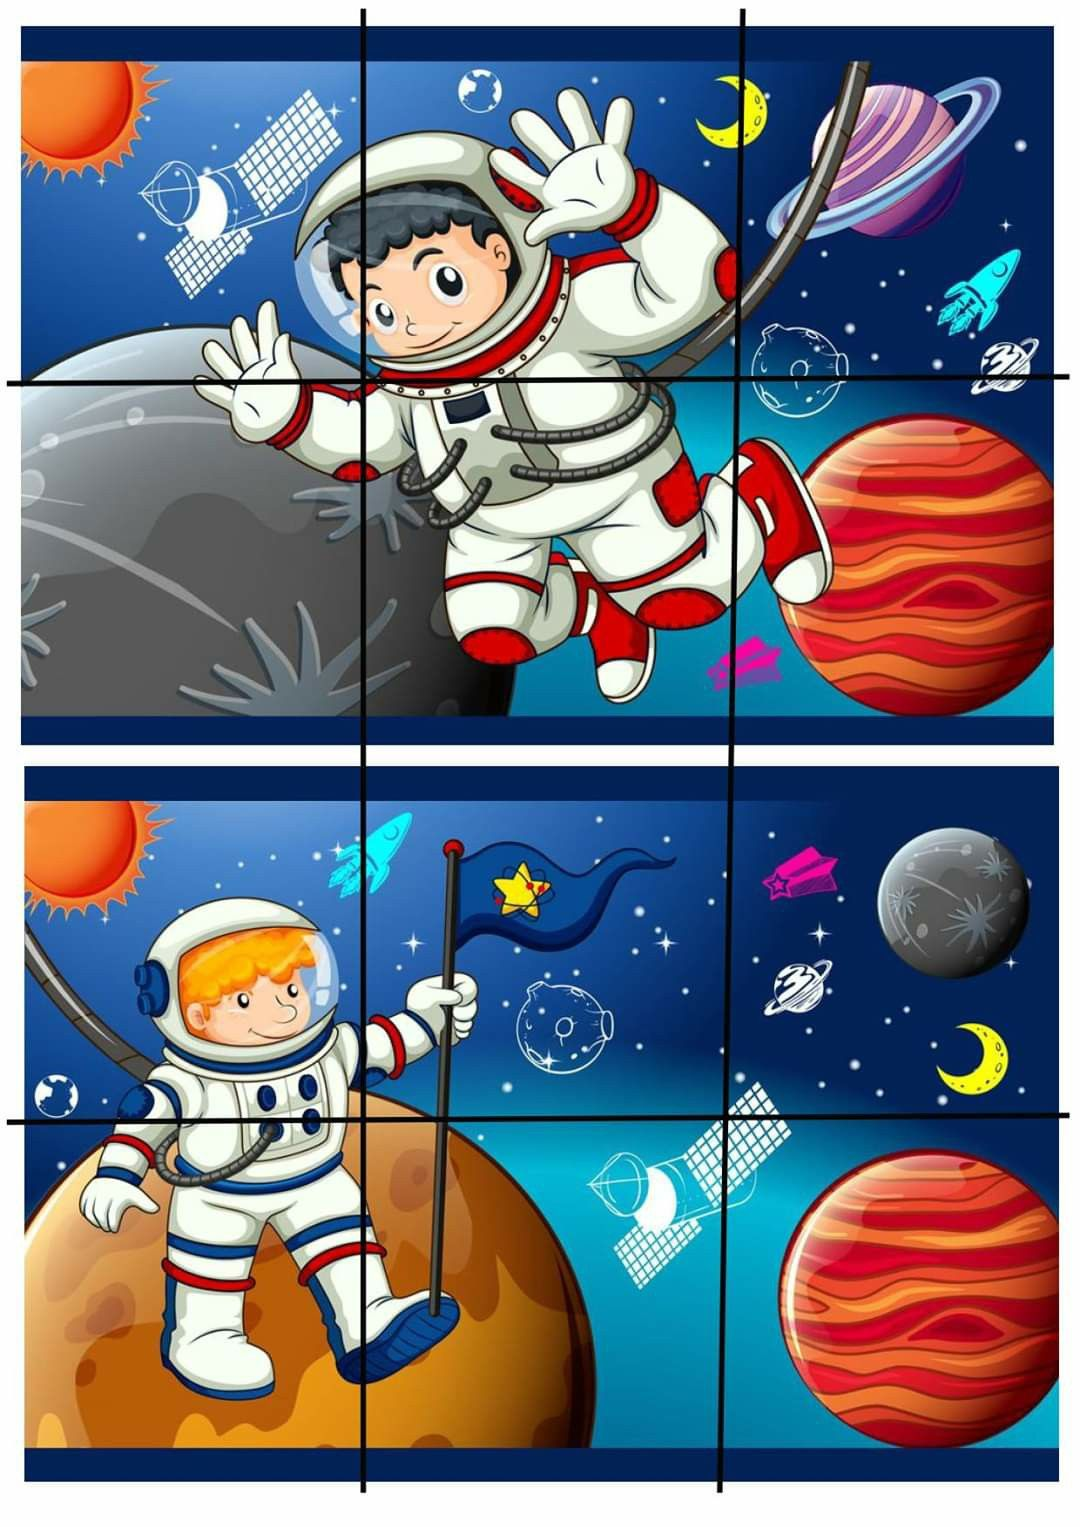 Pin By Celine Malenfant On Didaktika In 2020 Space Crafts Space Theme Astronaut Birthday